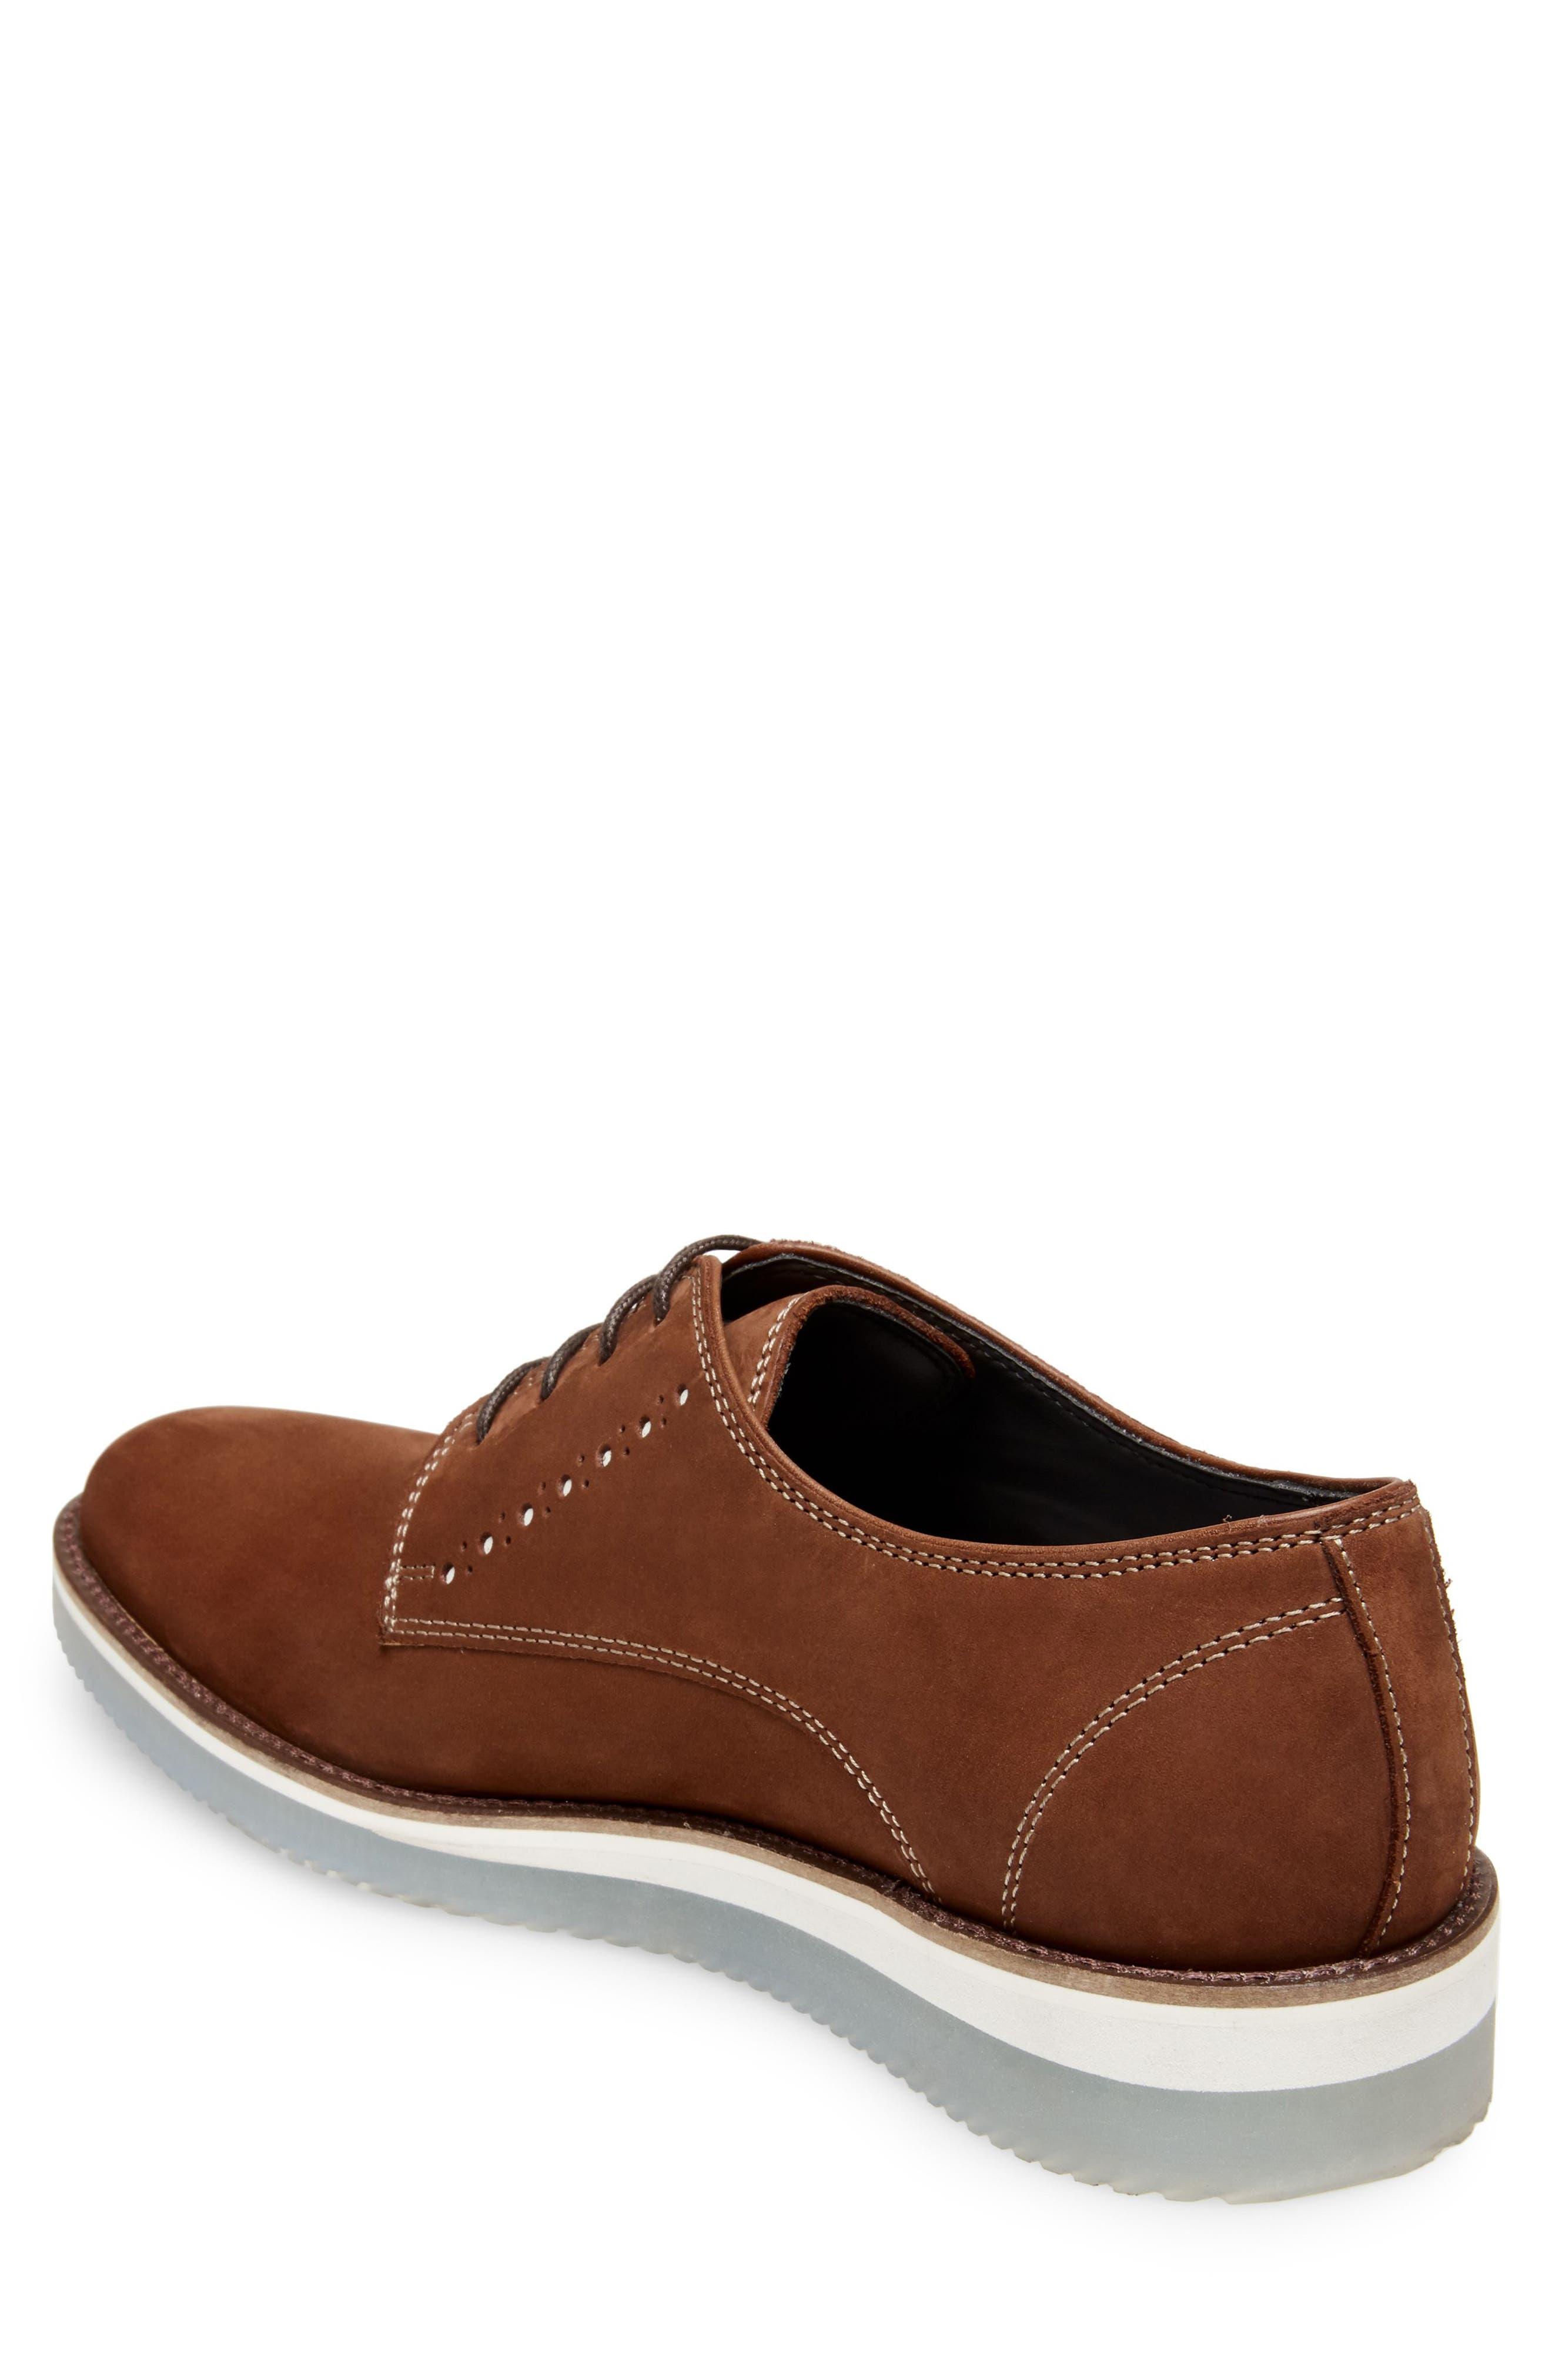 Inquest Plain Toe Derby,                             Alternate thumbnail 2, color,                             Cognac Nubuck